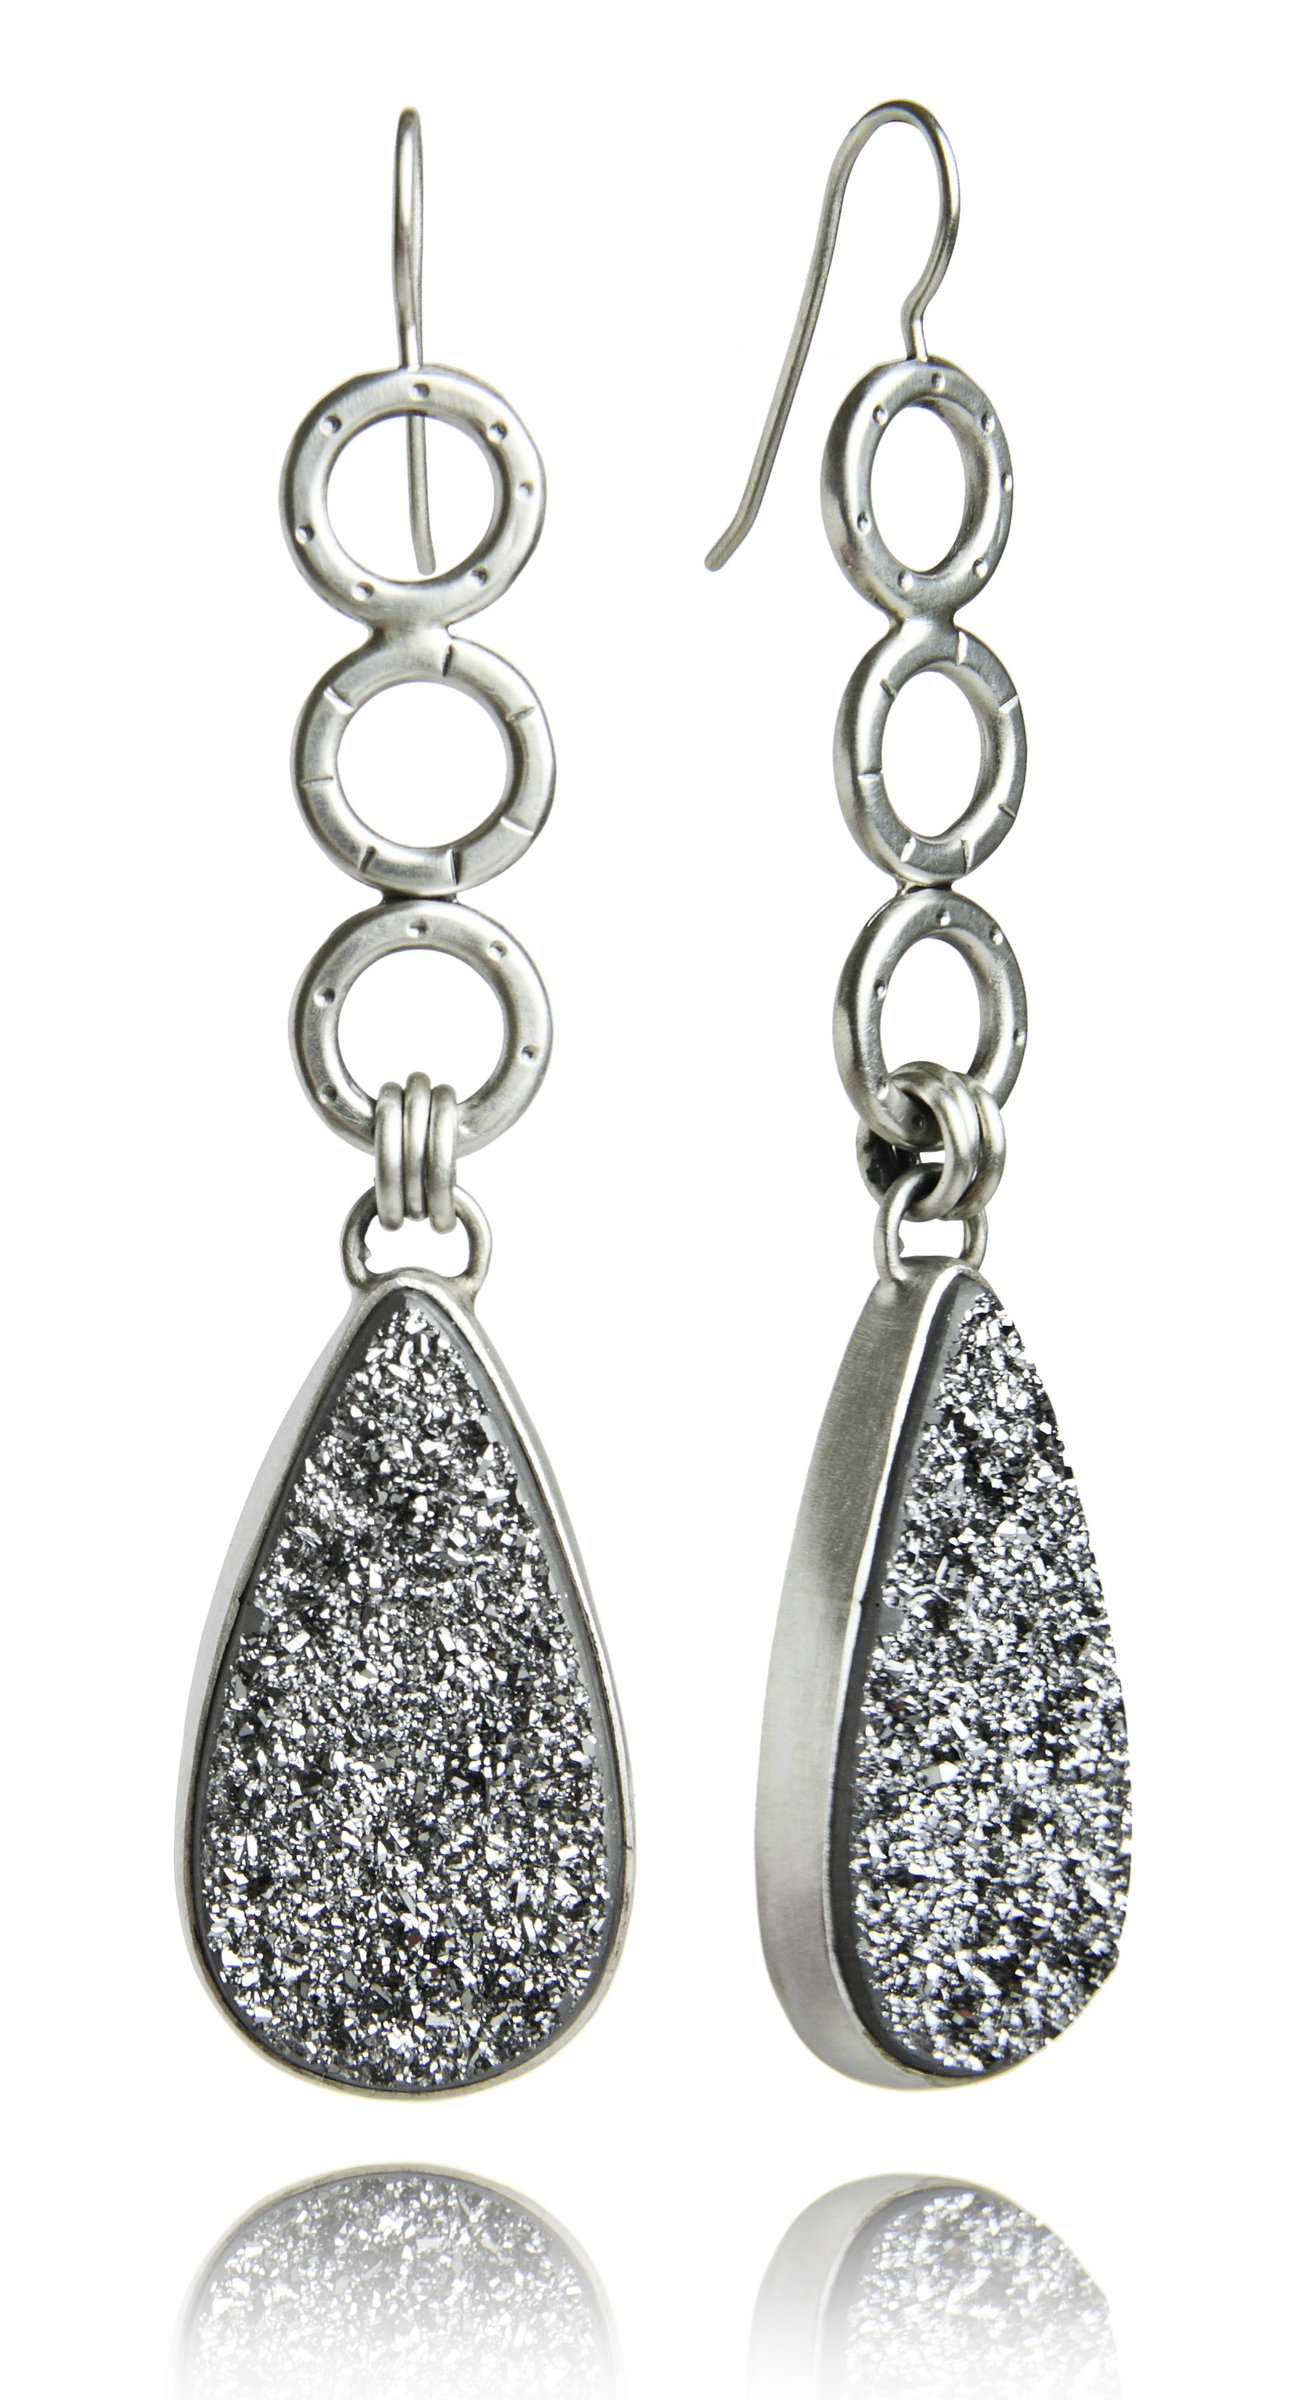 Sterling Silver and Silver Druzy Oscar Earrings